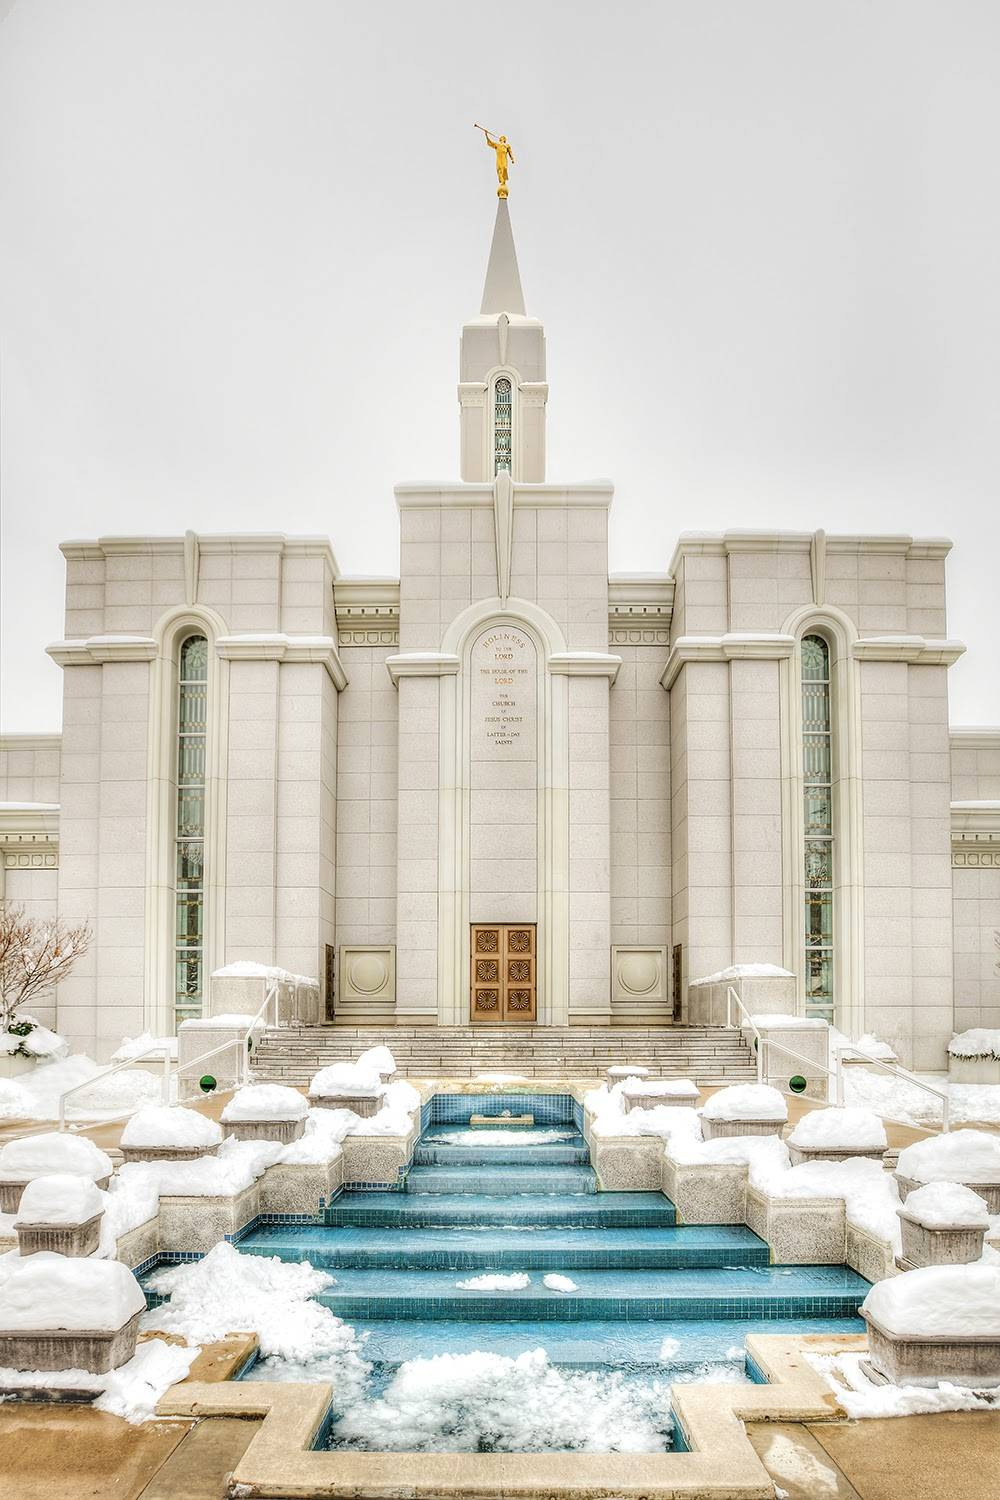 Bountiful Temple blue fountains surrounded by snow.